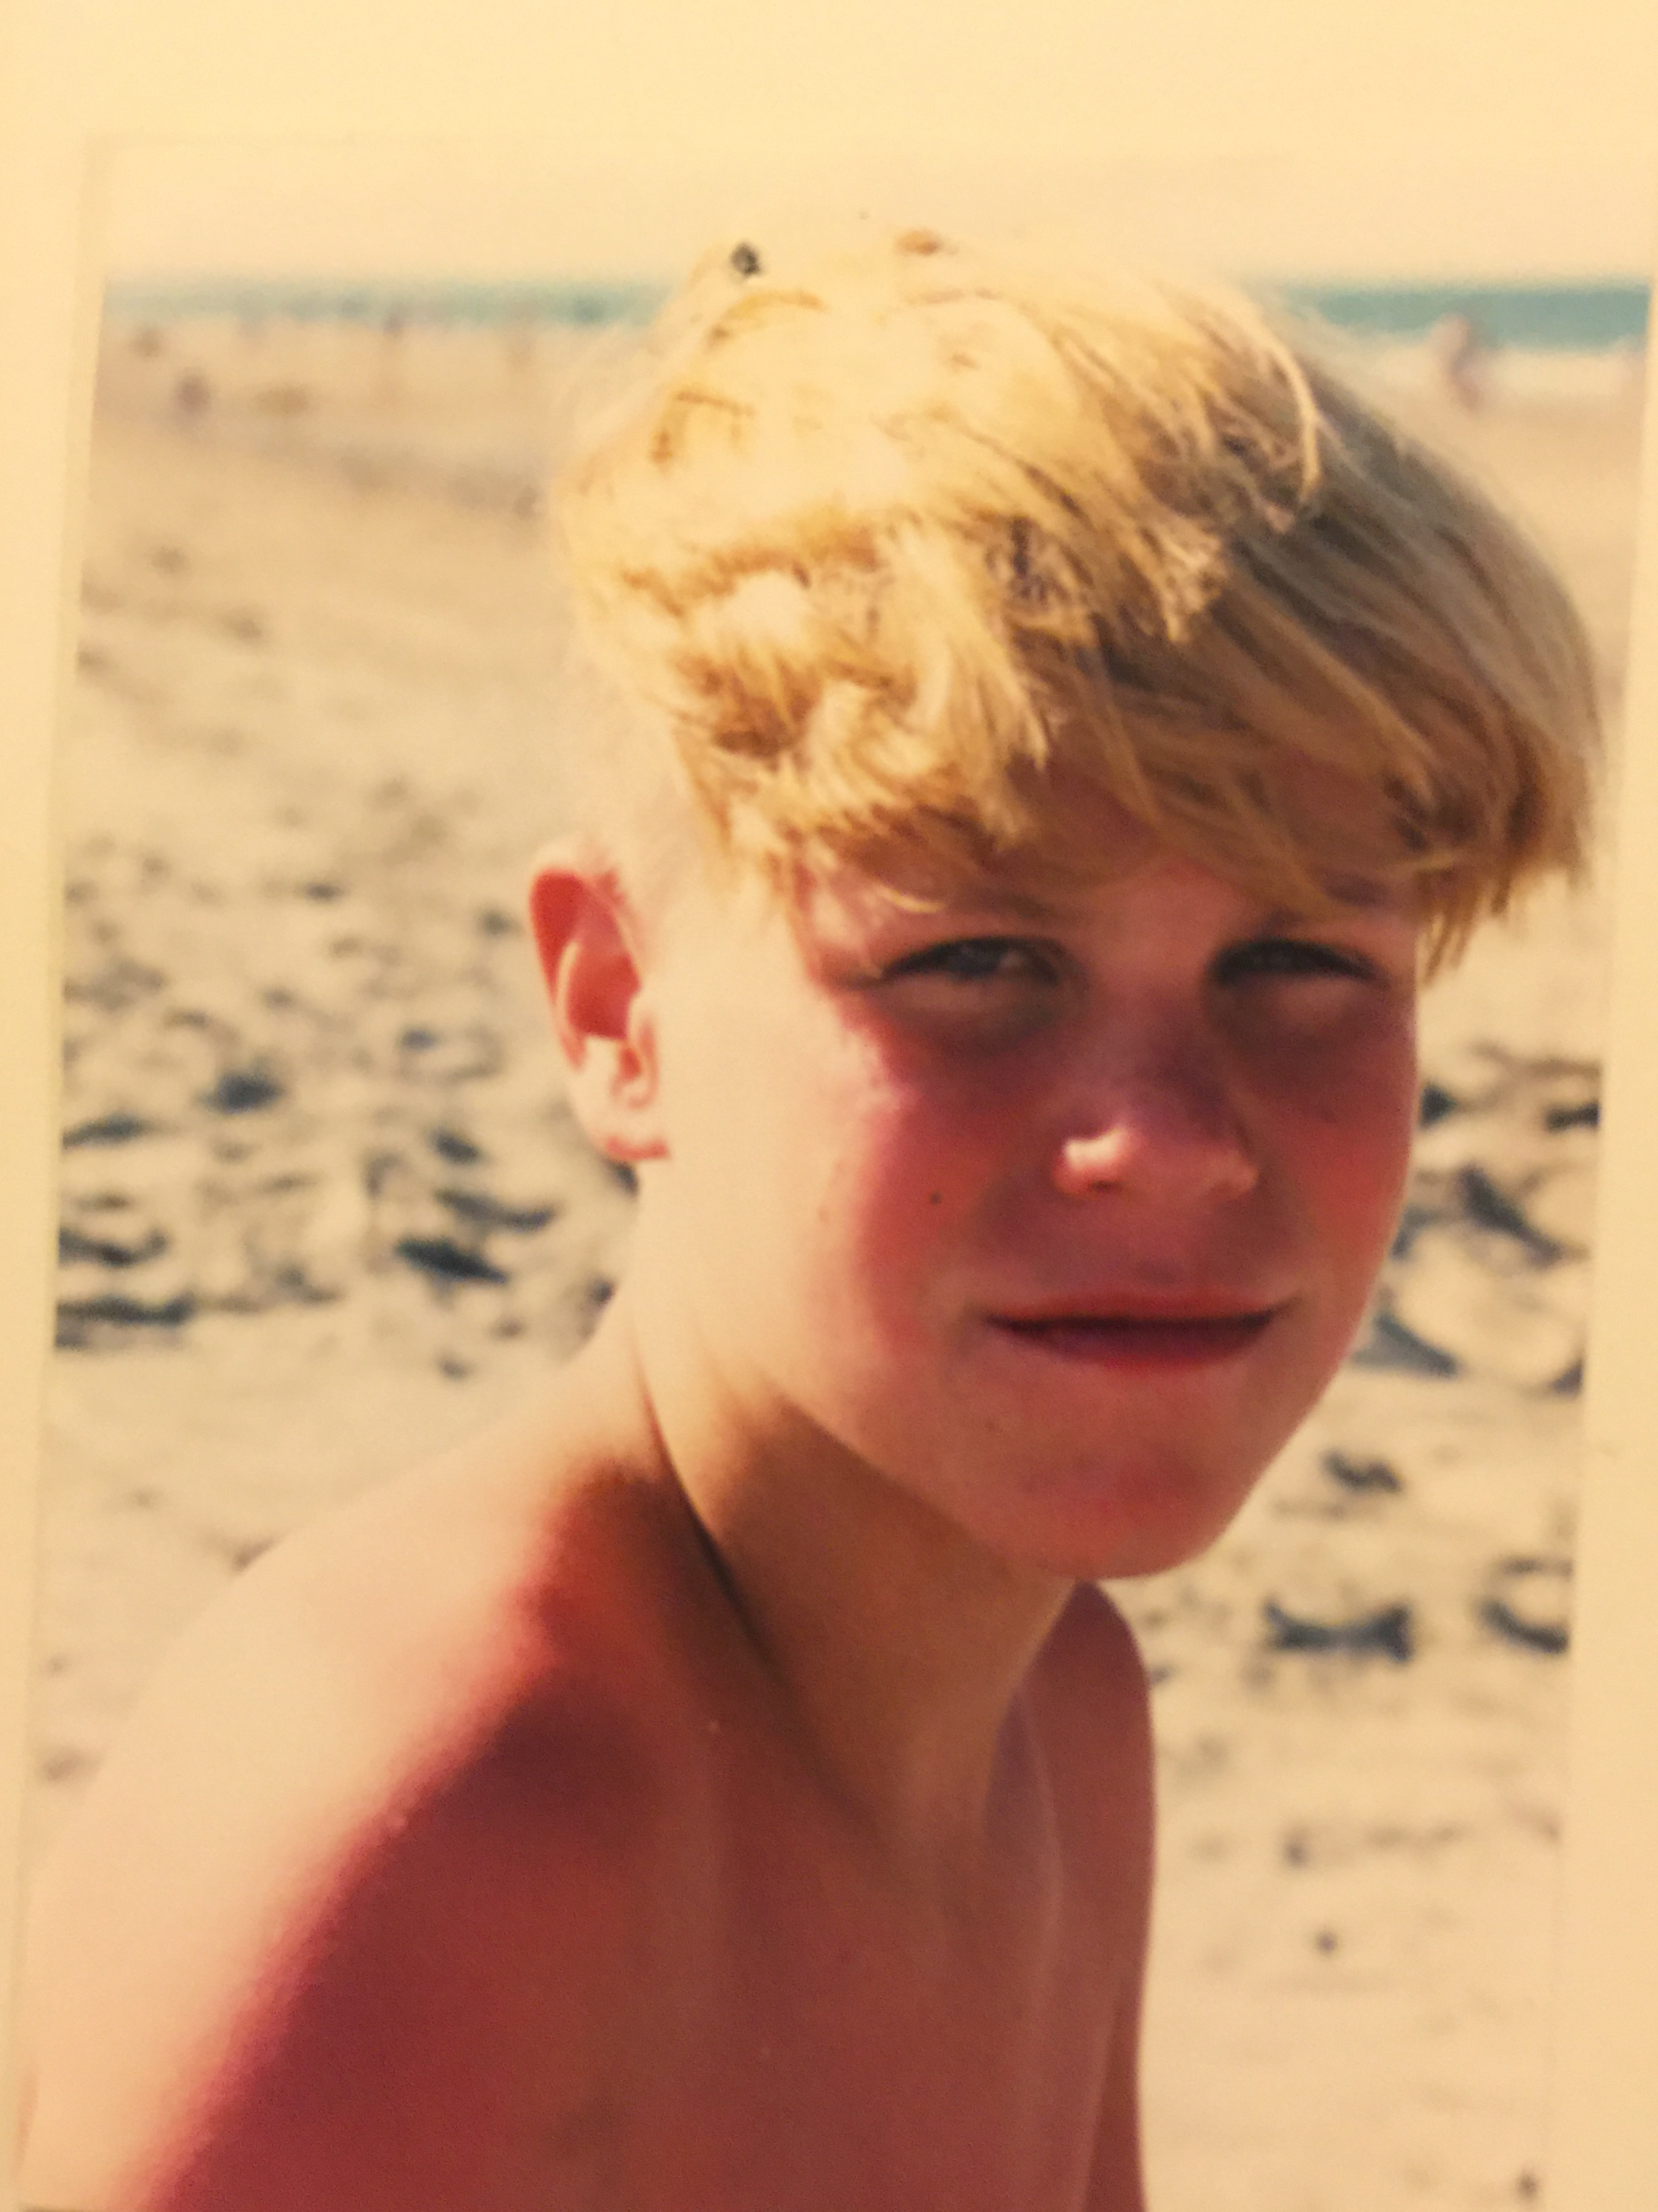 Billy at age 13